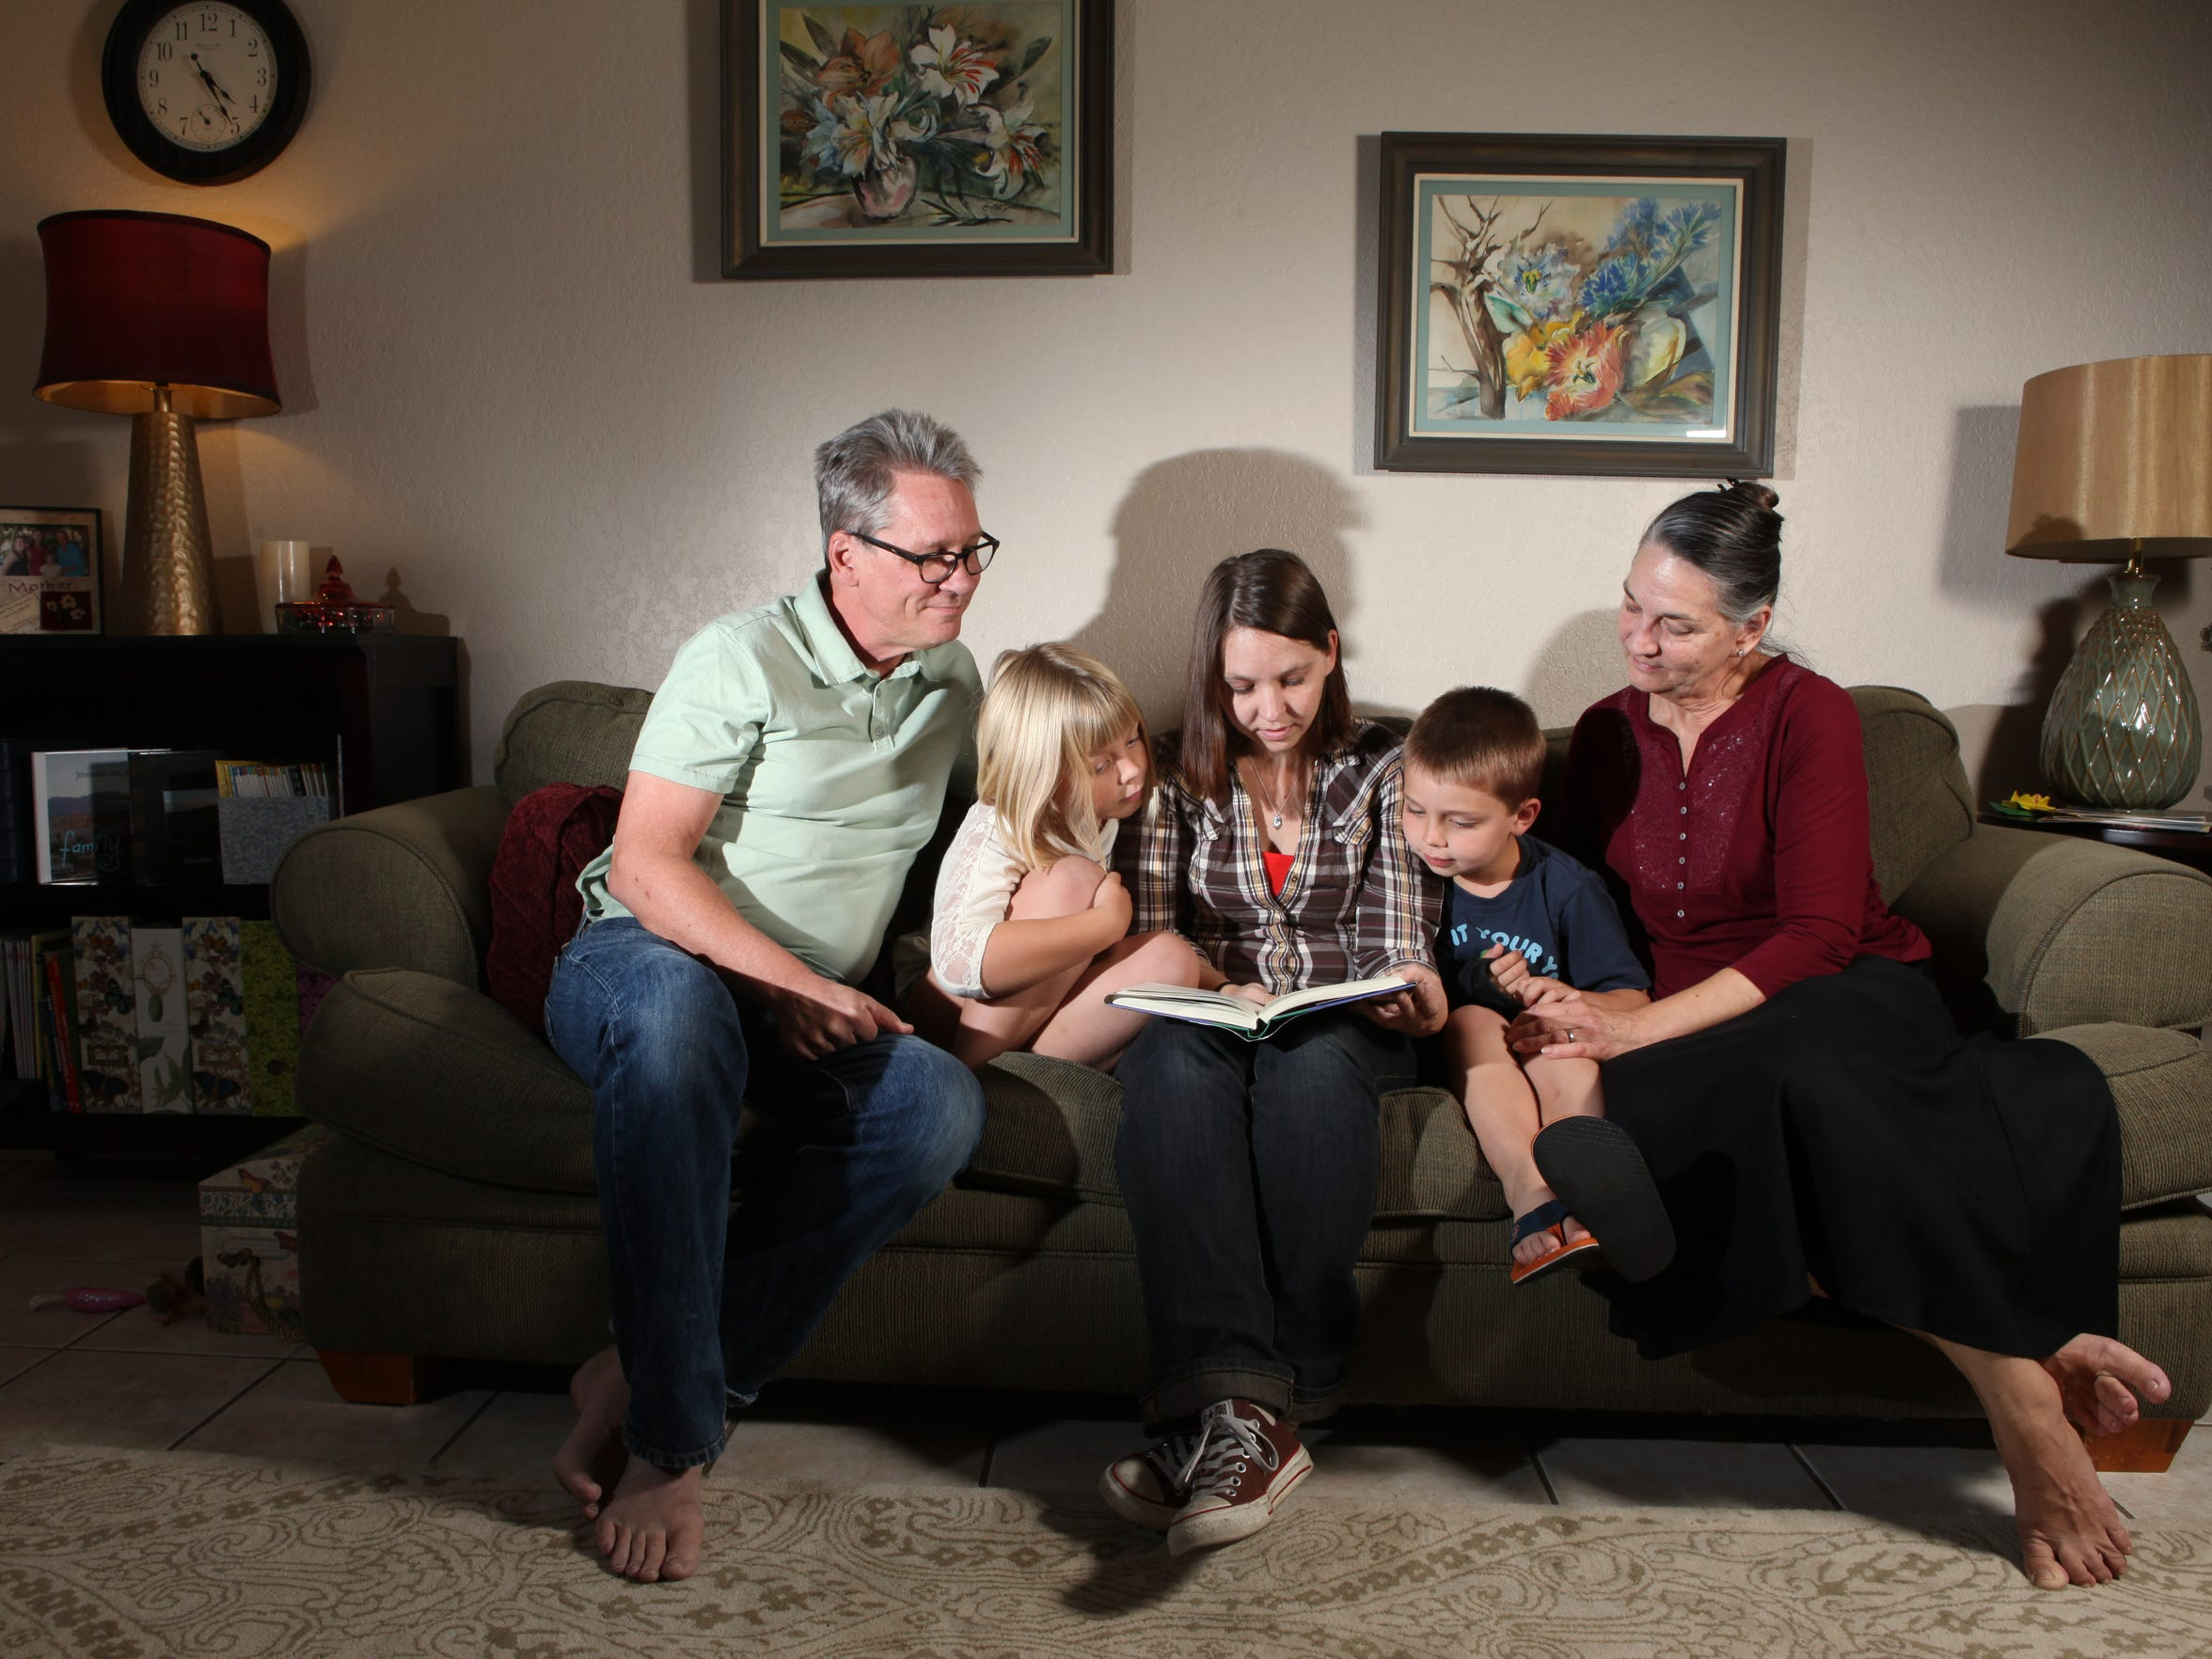 The McKay Family: (From left) Robert, 59, Lily, 8, Hilary, 32, Milo, 6, and Colleen, 59, read together as a family.  As a multigenerational family, Hilary often brings her children to their grandparents' home which is located just down the street from her home.